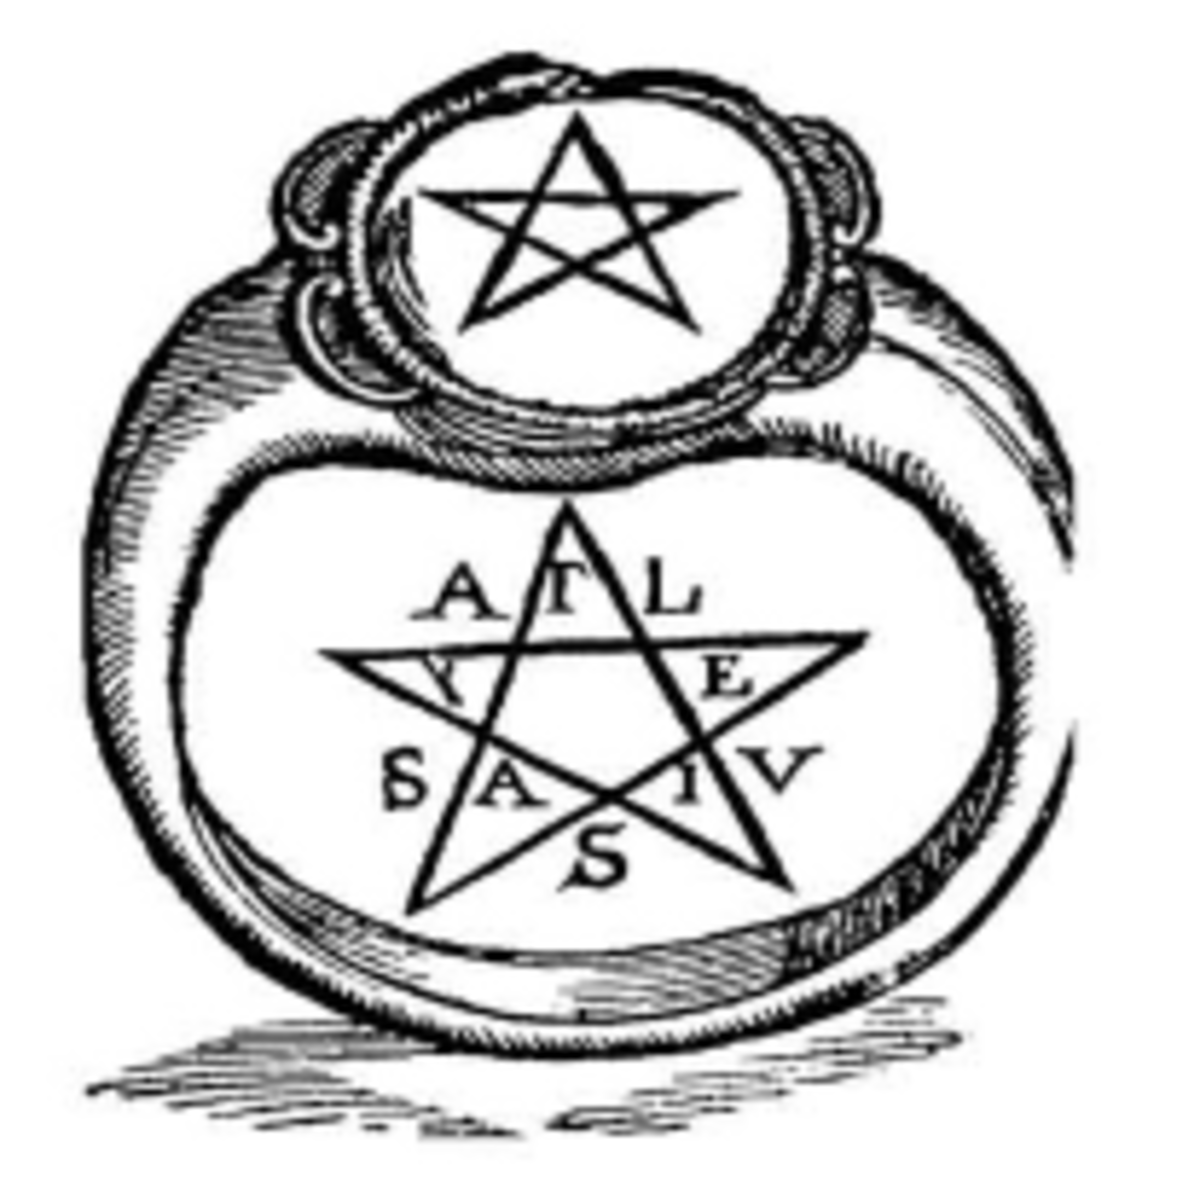 Pentagram and Pentacle Defined for Beginner Wiccans